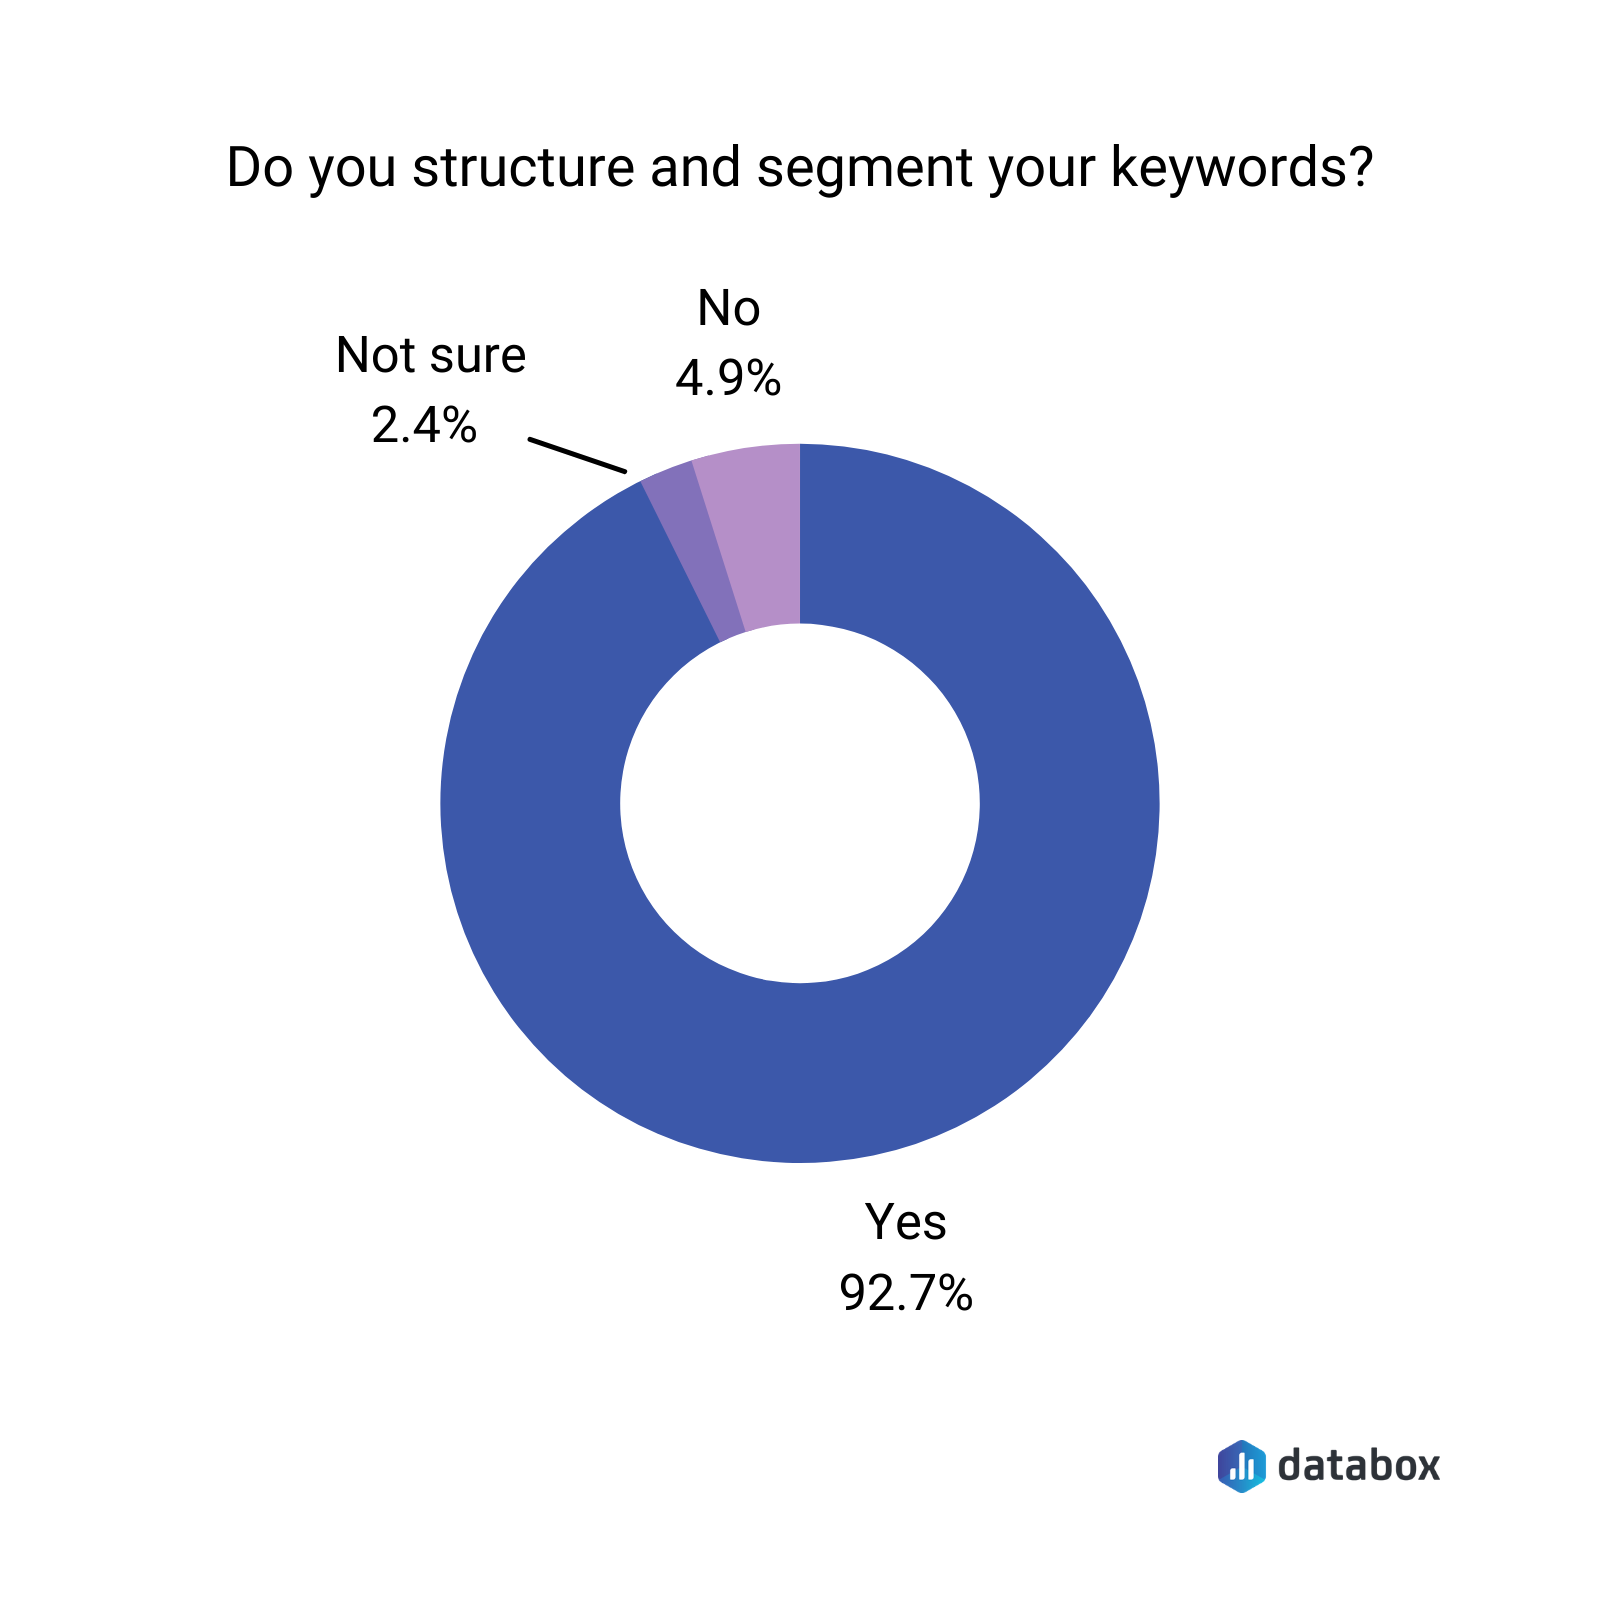 Do you structure and segment your keywords